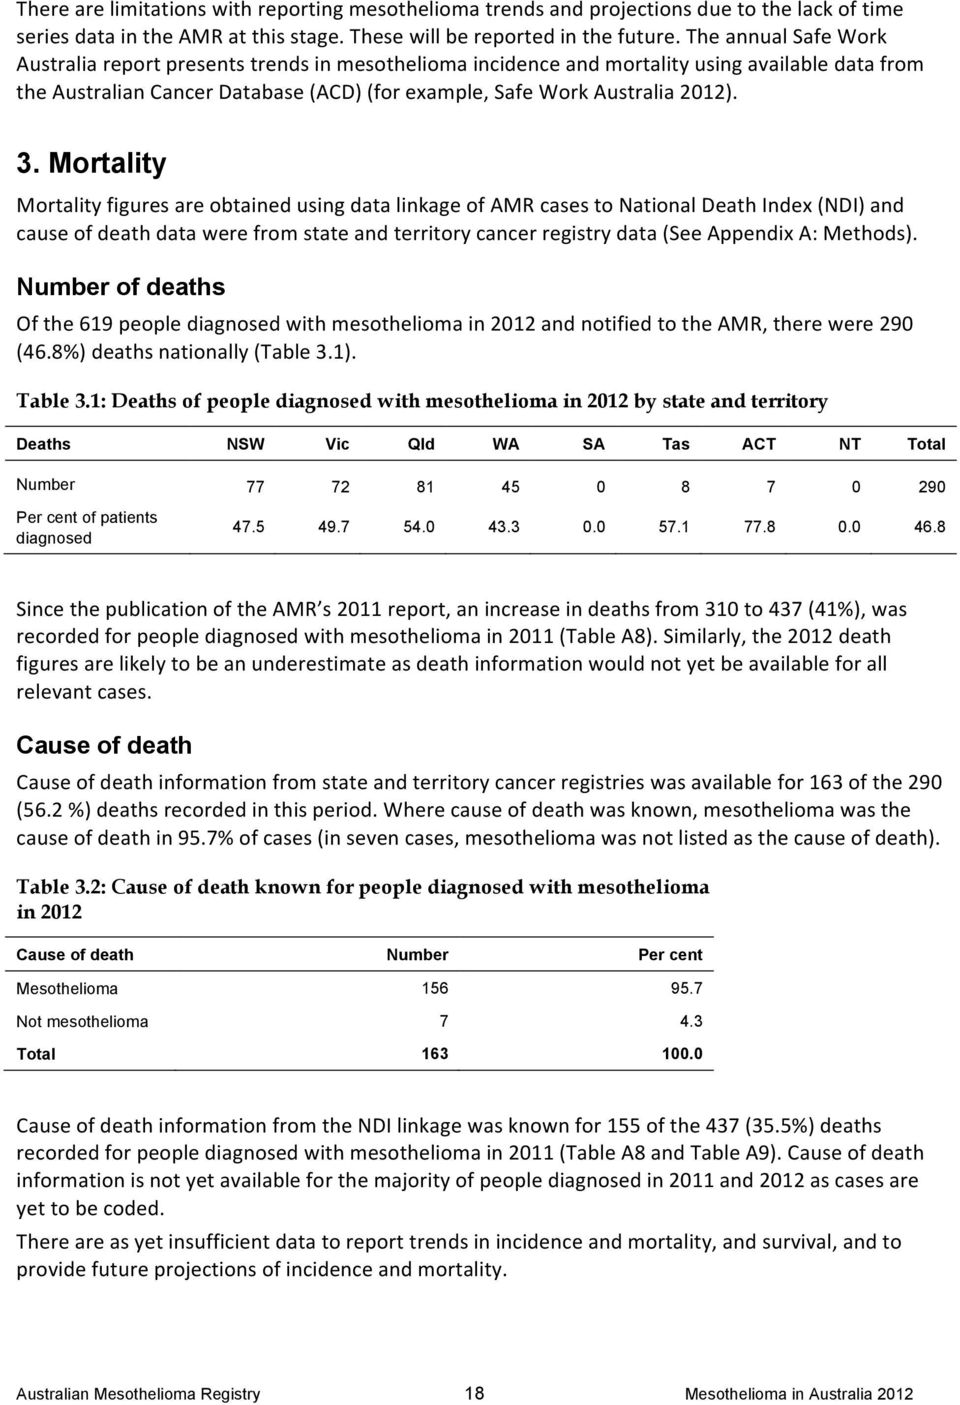 Mortality Mortality figures are obtained using data linkage of AMR cases to National Death Index (NDI) and cause of death data were from state and territory cancer registry data (See Appendix A: